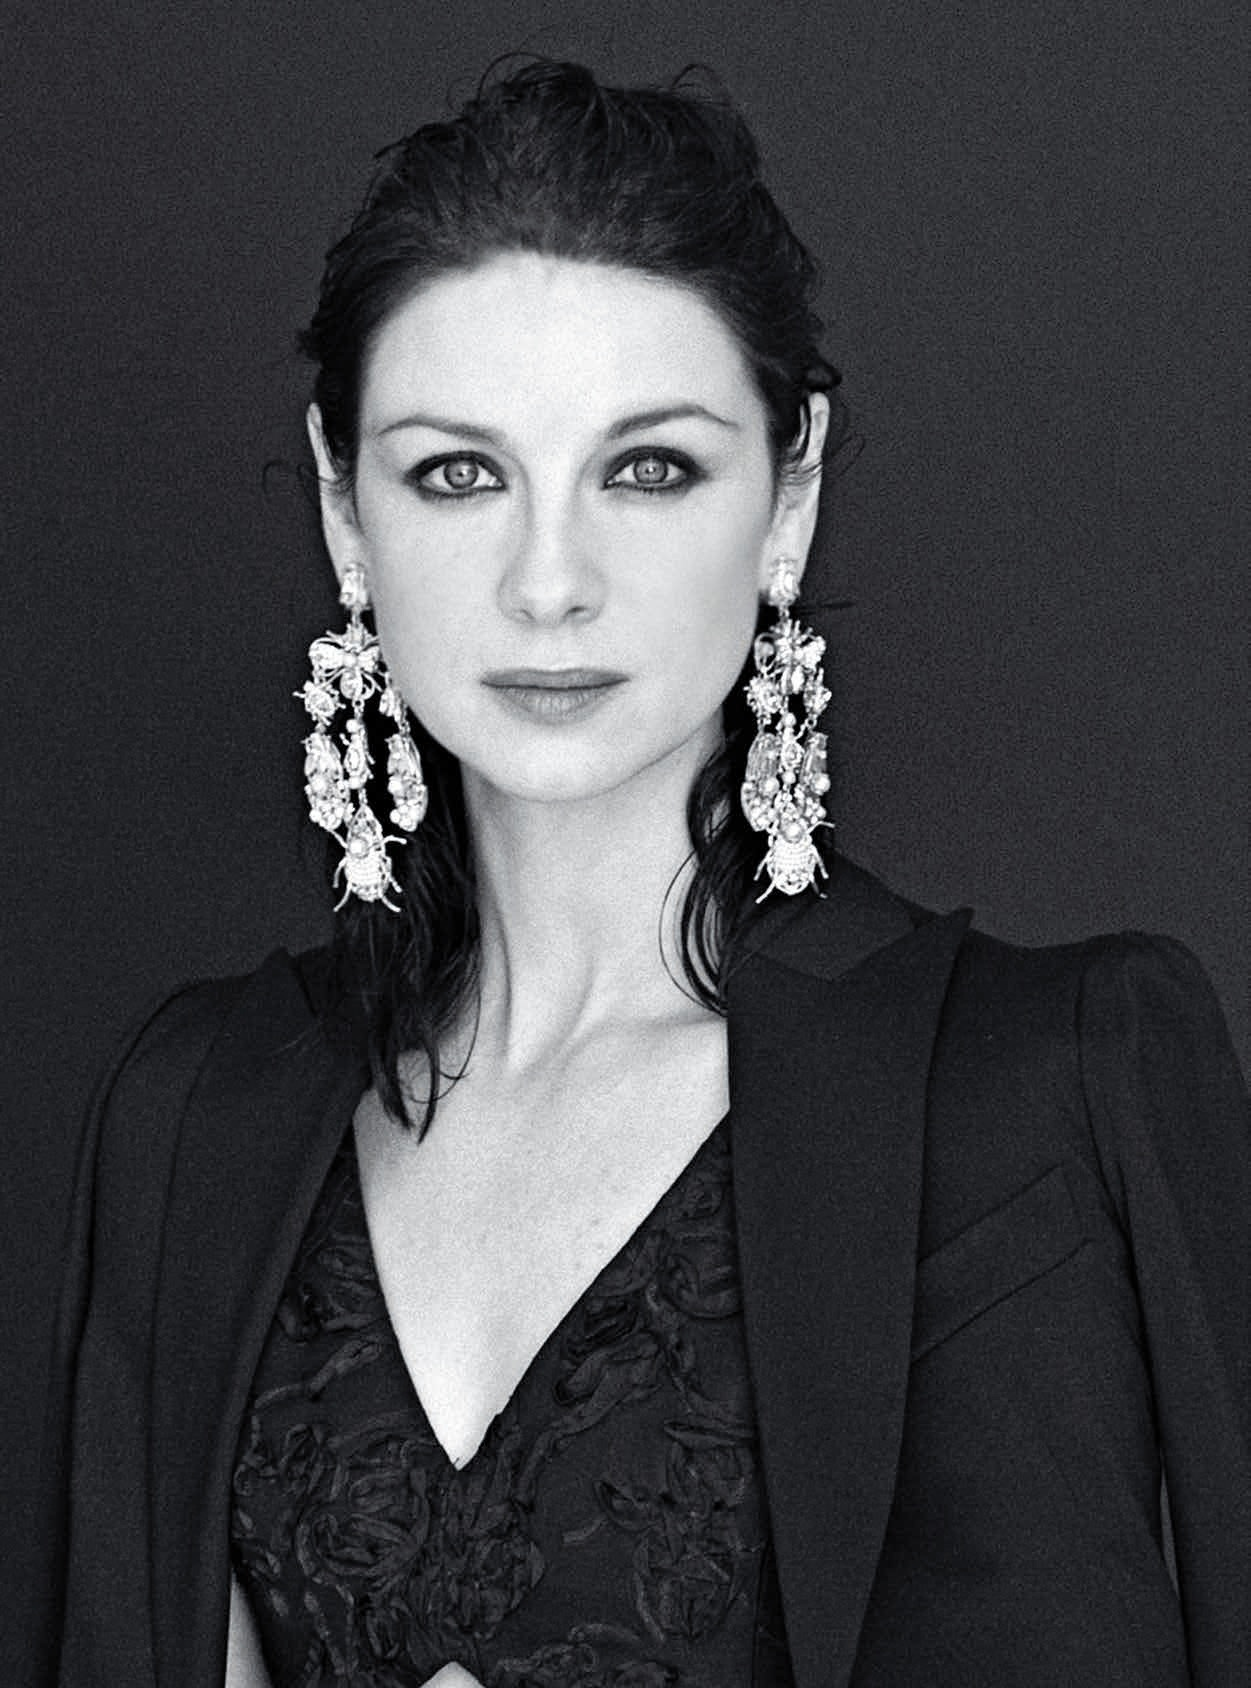 3 sisters photo shoot ideas - NEW interview and photoshoot of Caitriona Balfe for